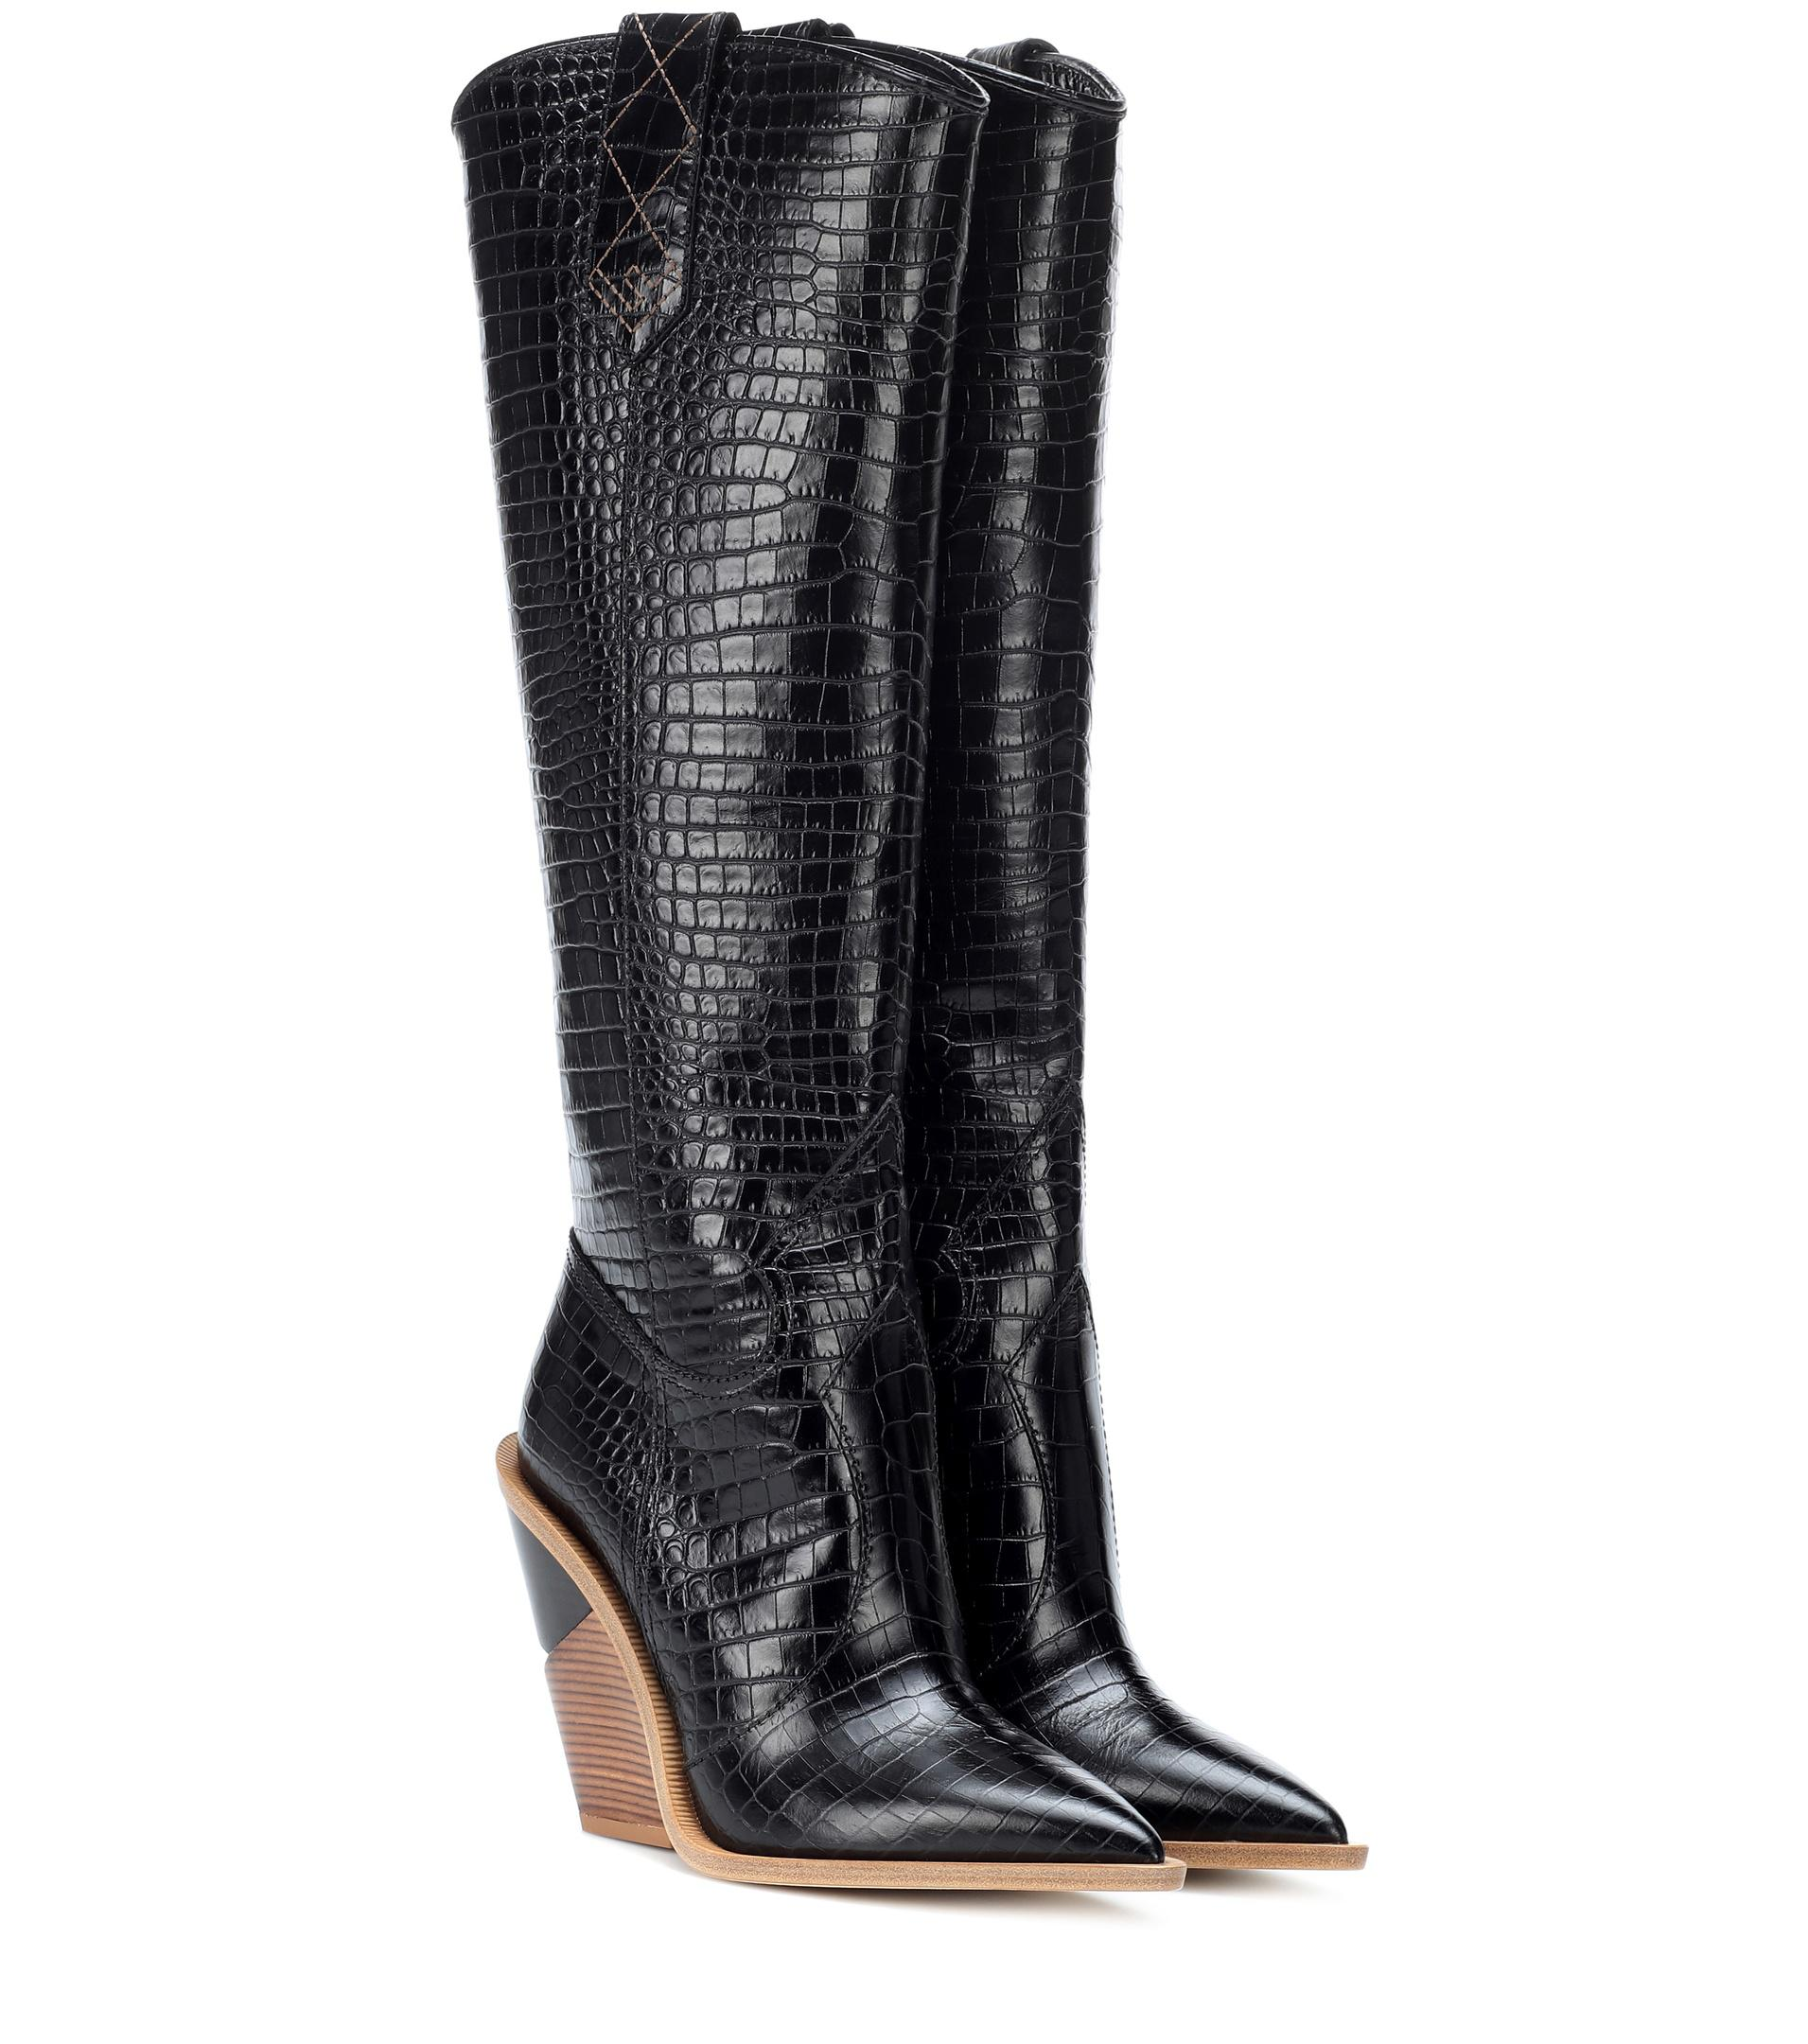 Fendi Embossed Leather Cowboy Boots in